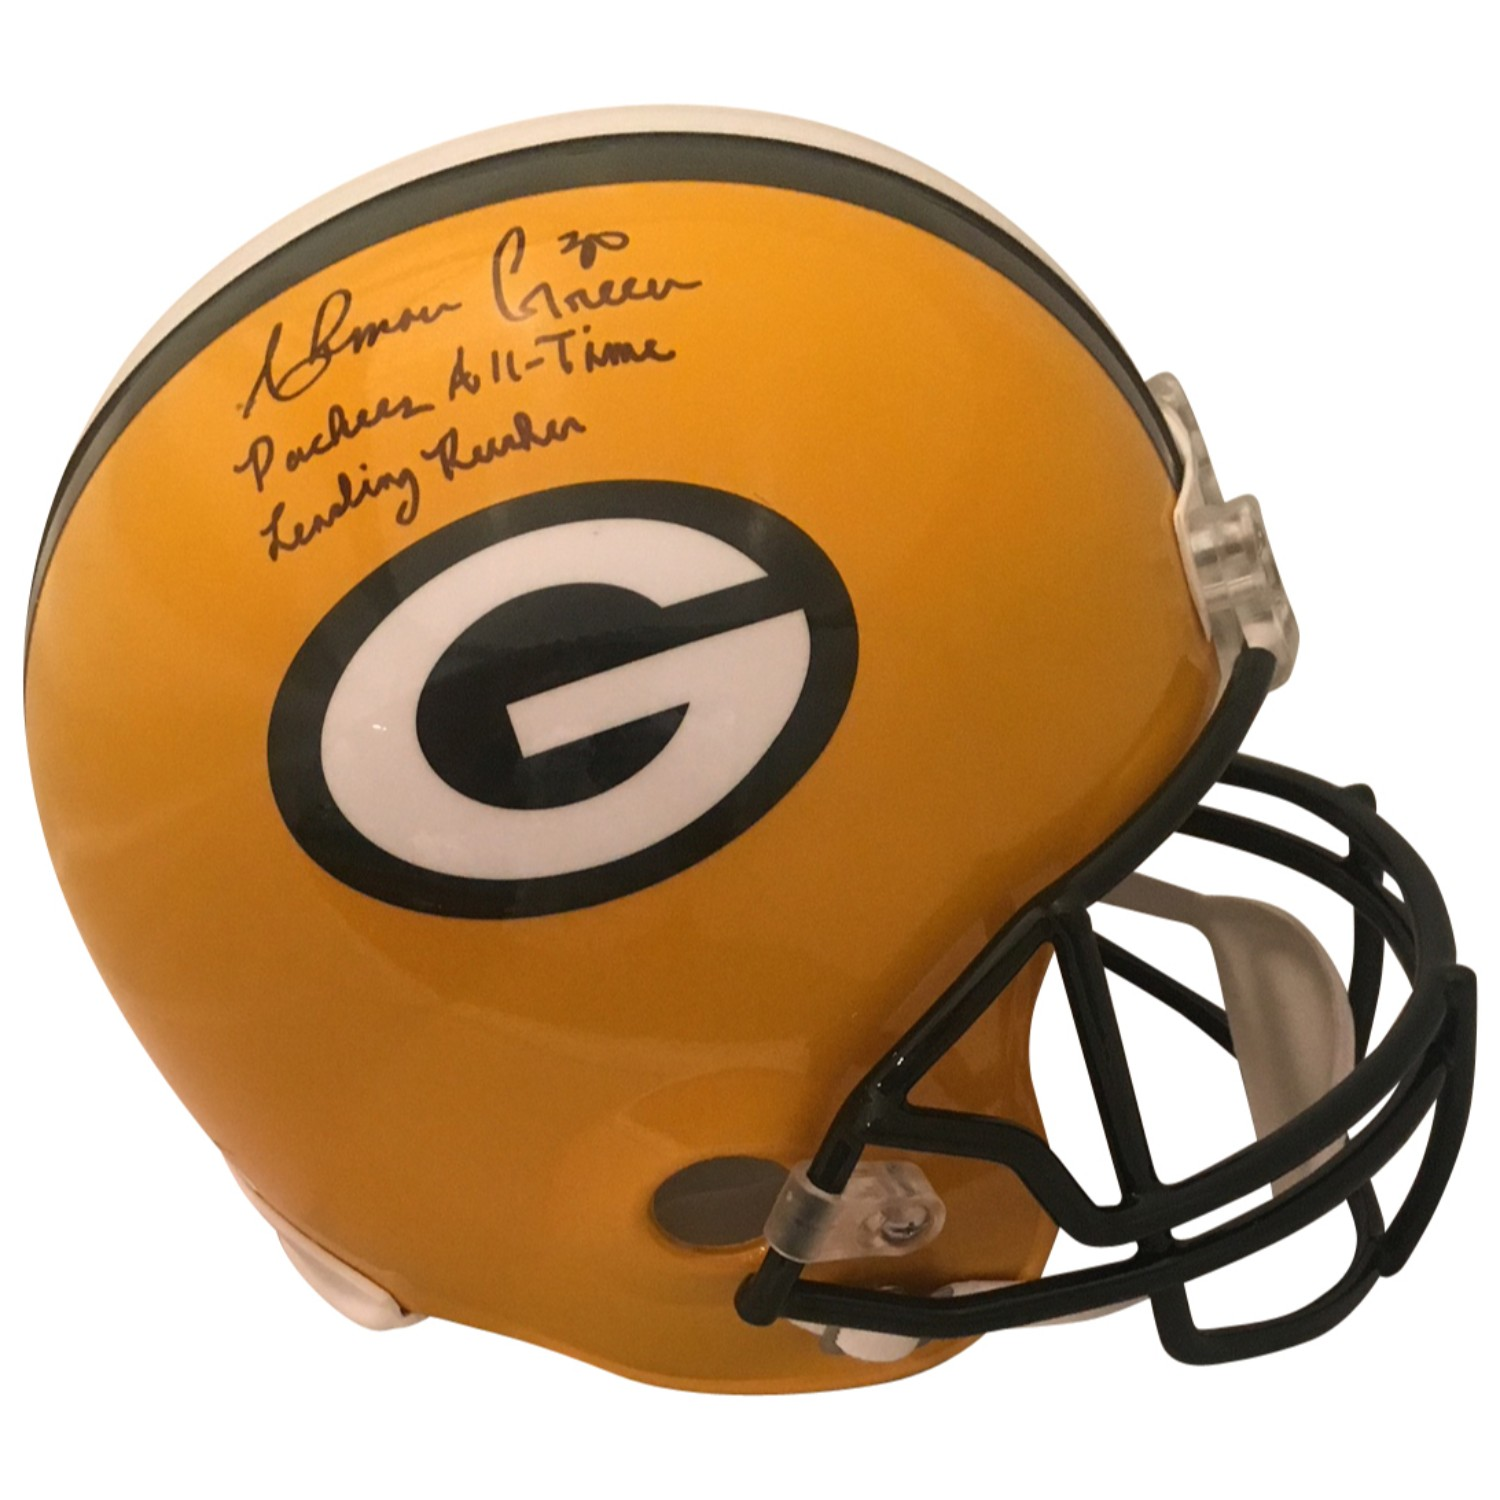 Ahman Green Autographed Green Bay Packers Signed Full Size Football Helmet ALL TIME RUSHER JSA COA